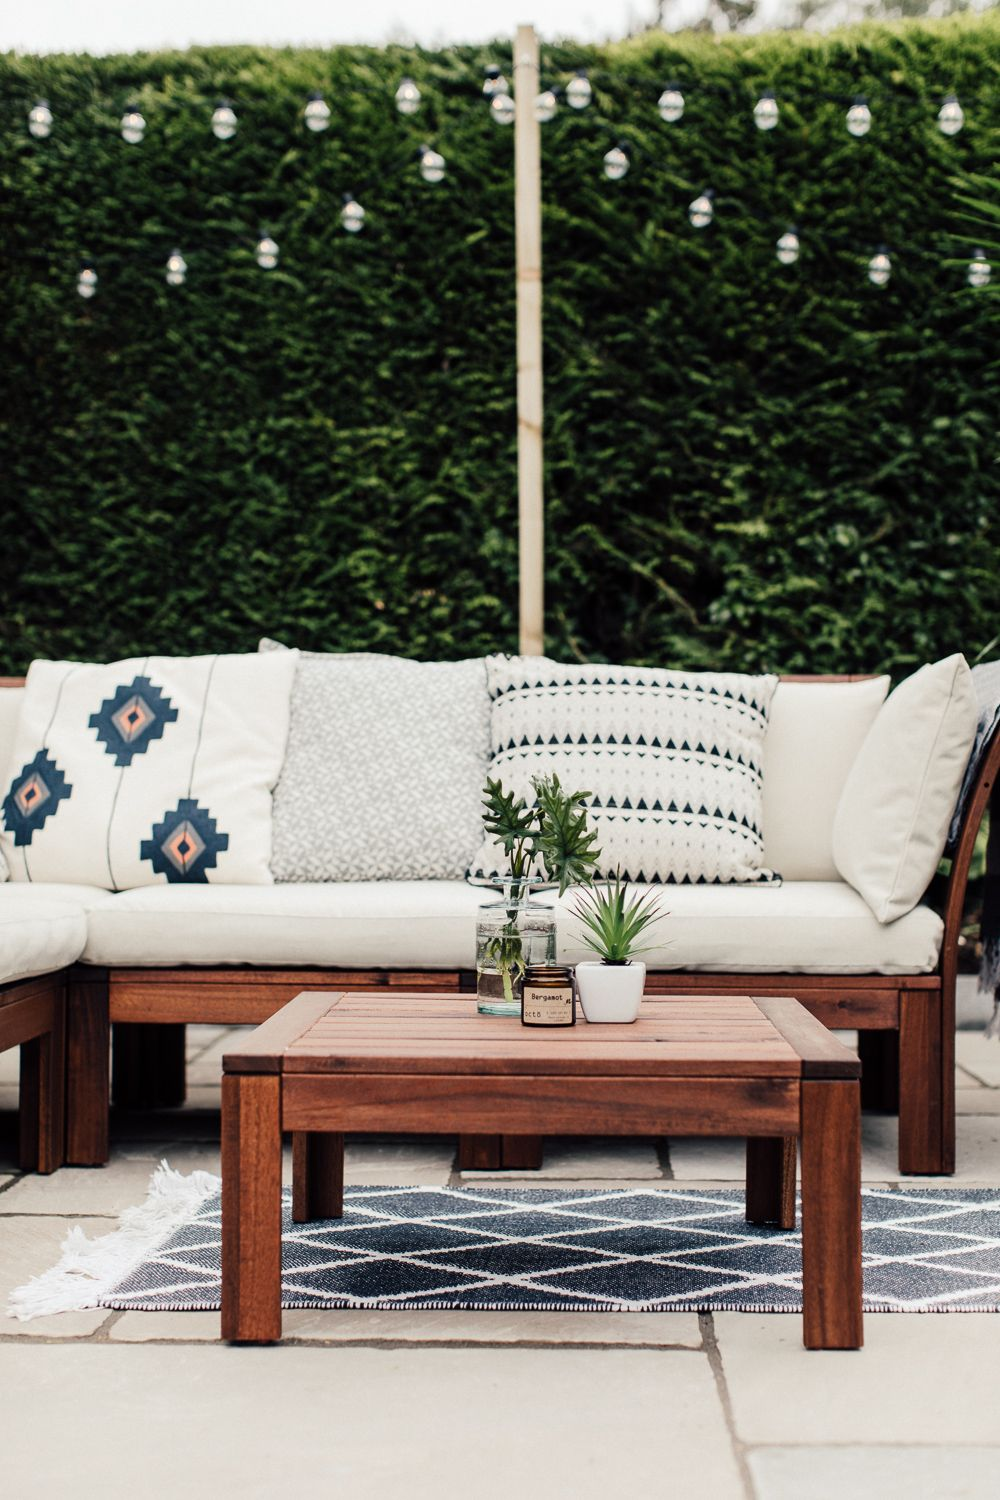 Ikea Küchen Katalog 2016 Pdf A Patio For Lounging - Rock My Style | Uk Daily Lifestyle Blog | Ikea Patio, Ikea Patio Furniture, Outdoor Sofa Design